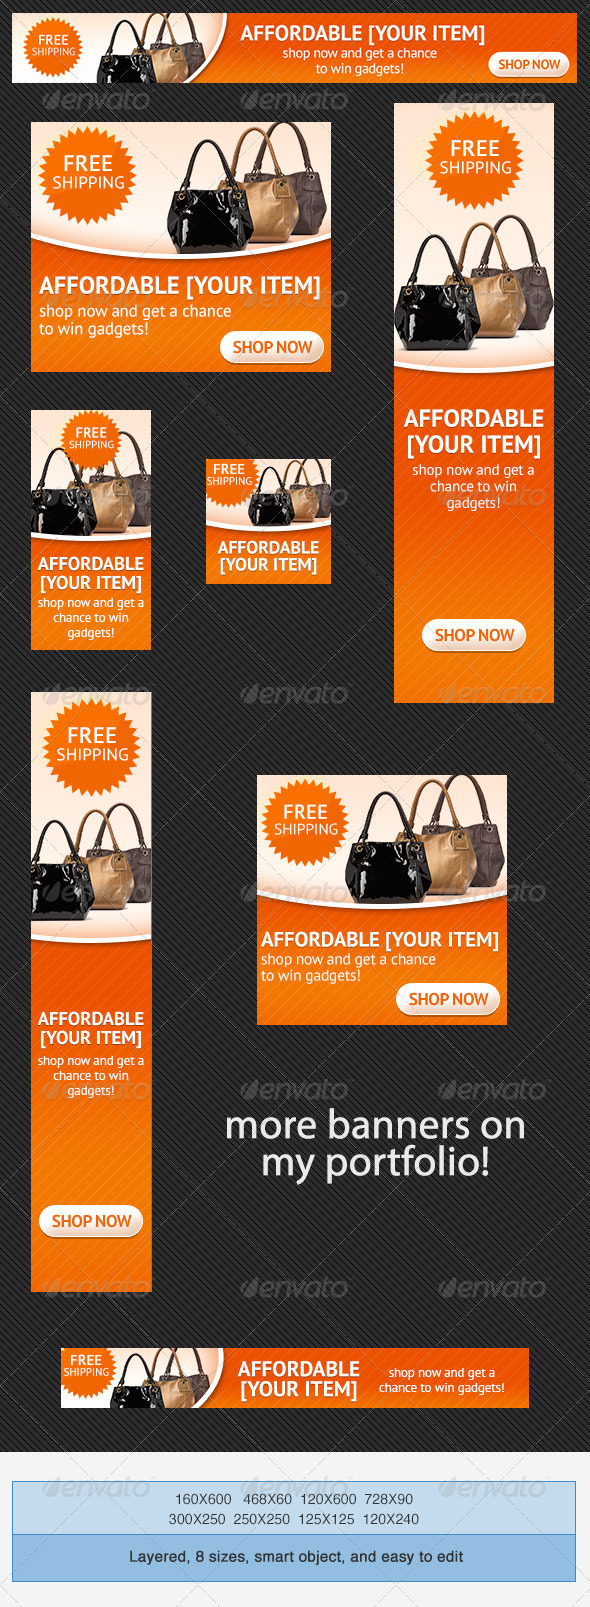 Free Banner Ad Templates Psd